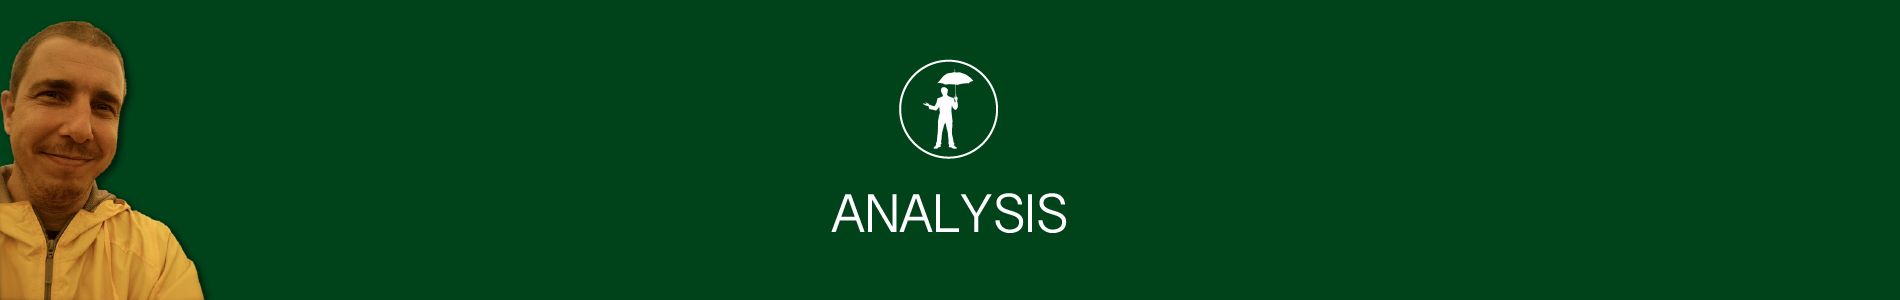 Header image for Analysis page